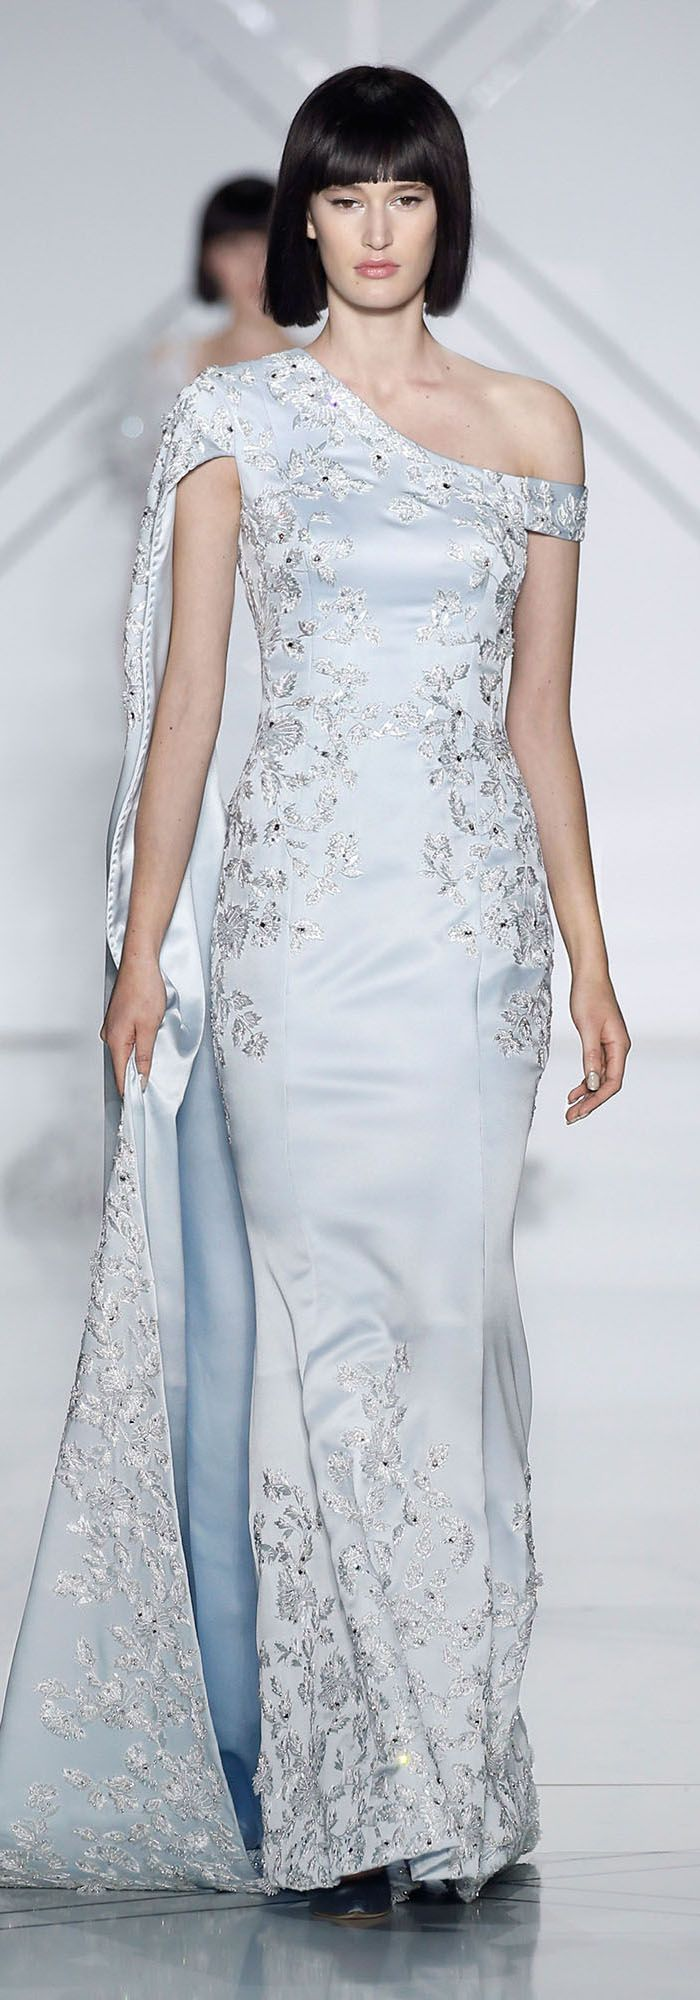 Ralph u russo spring summer collection robe soirée